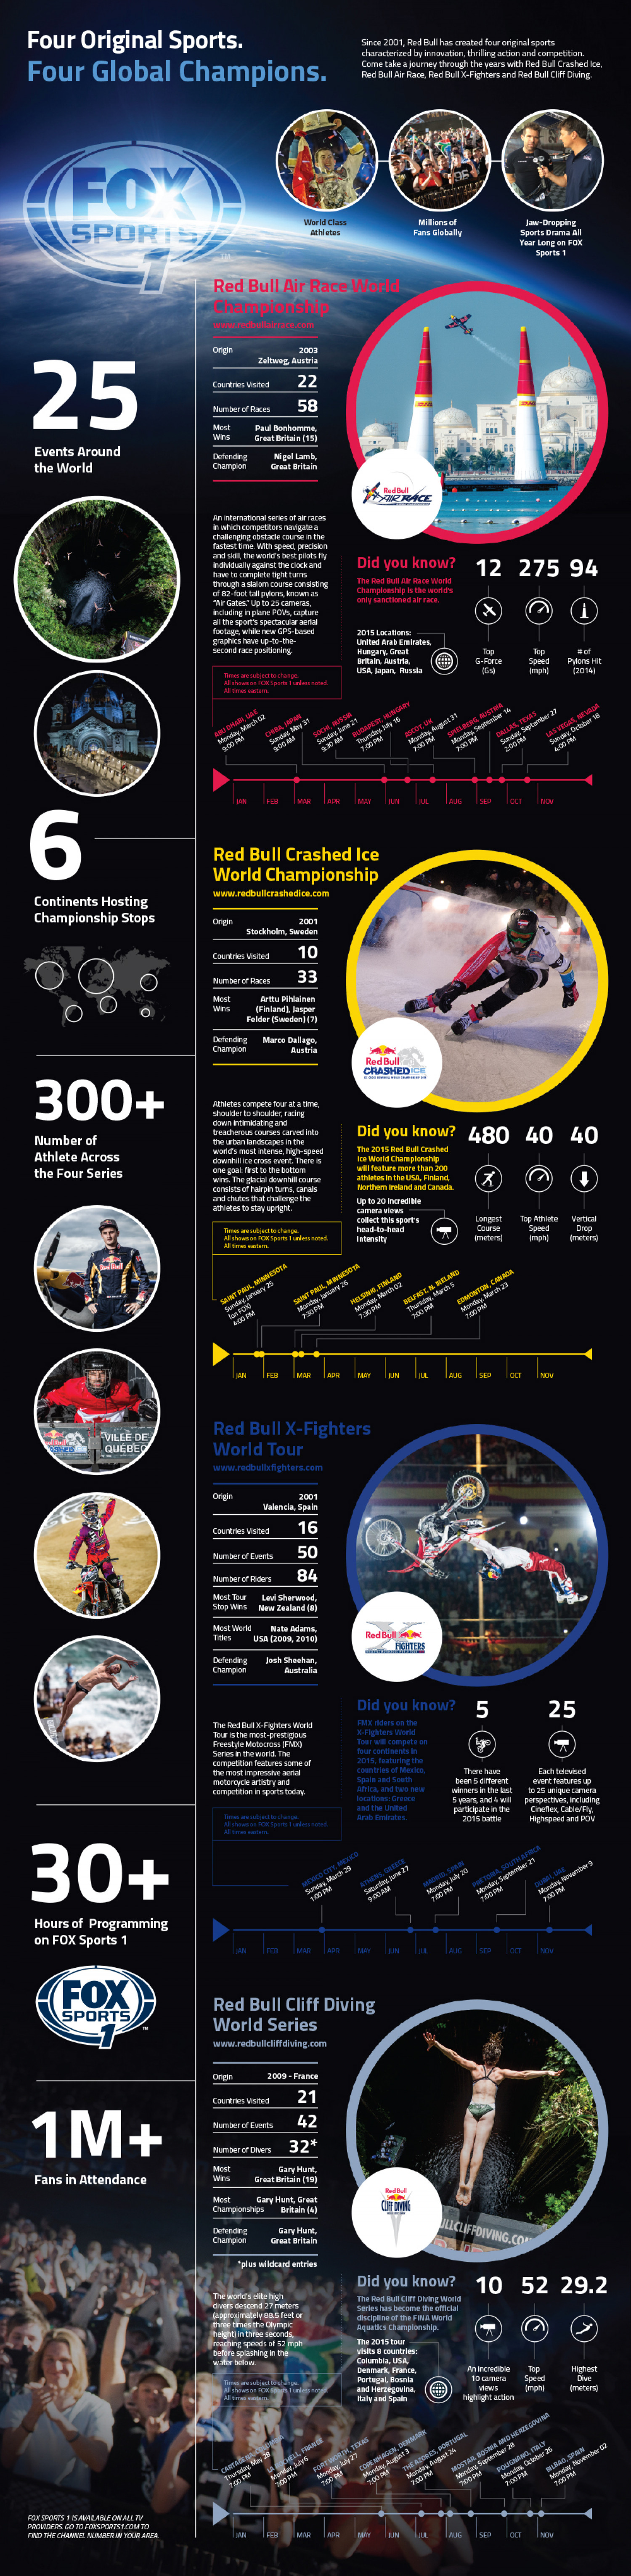 Red Bull Extreme Sports - FOX GLOBAL SERIES 2015 Infographic